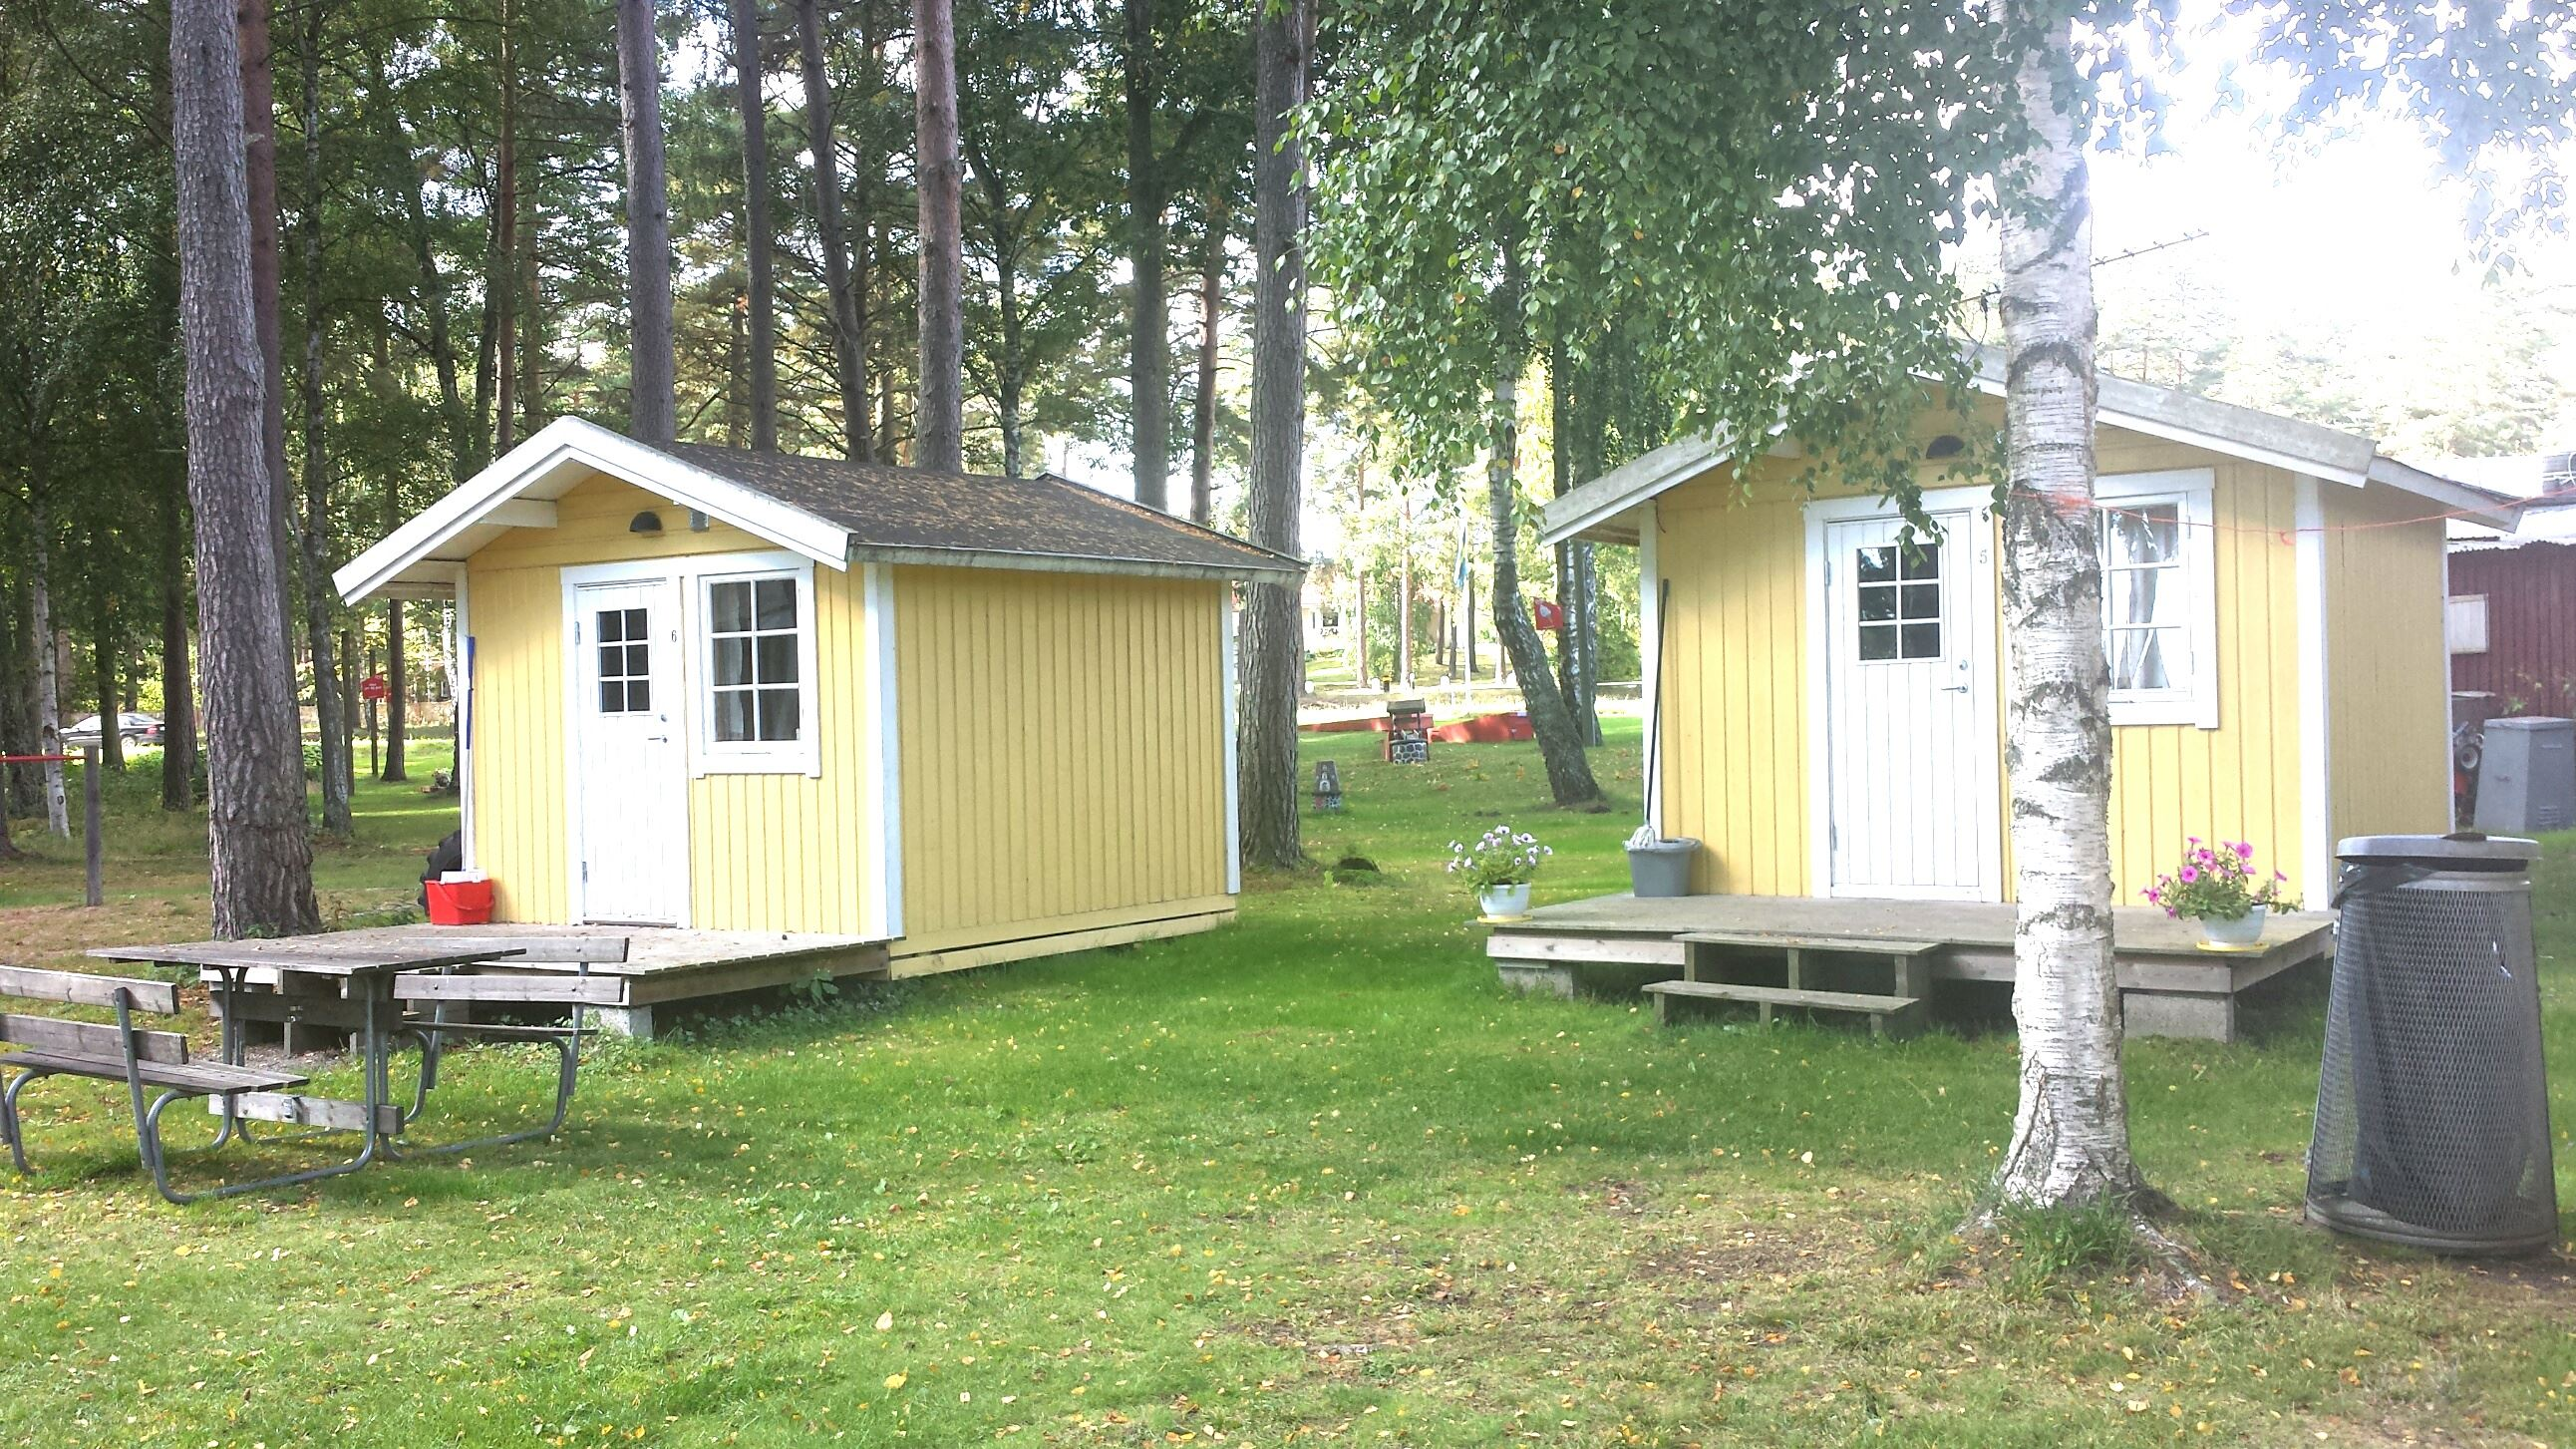 Alholmens Bad & Camping/Cottages